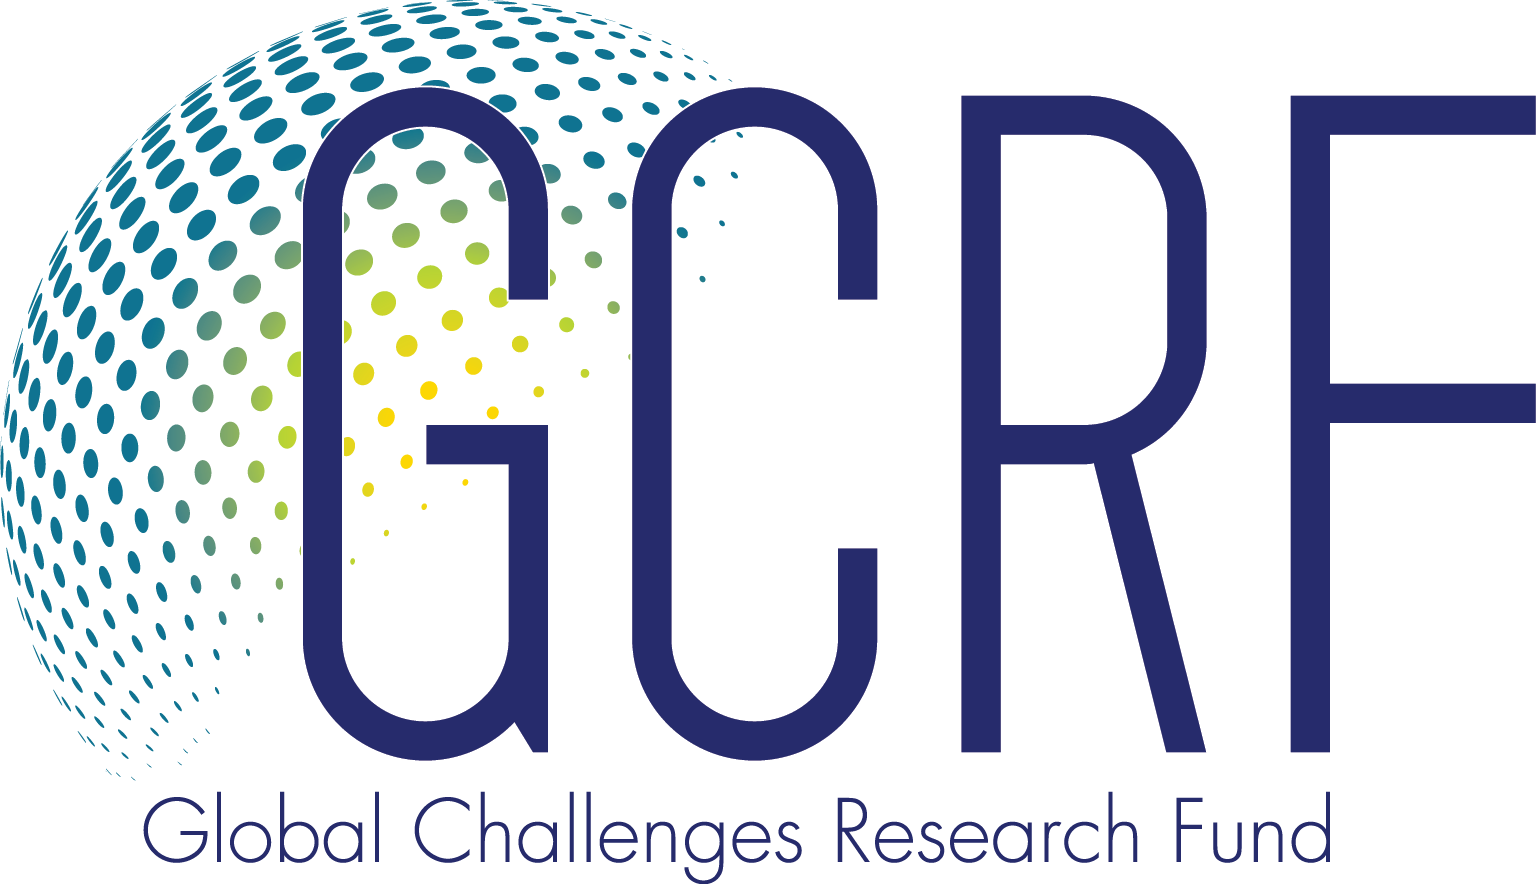 GCRF_Full_colour (002).png